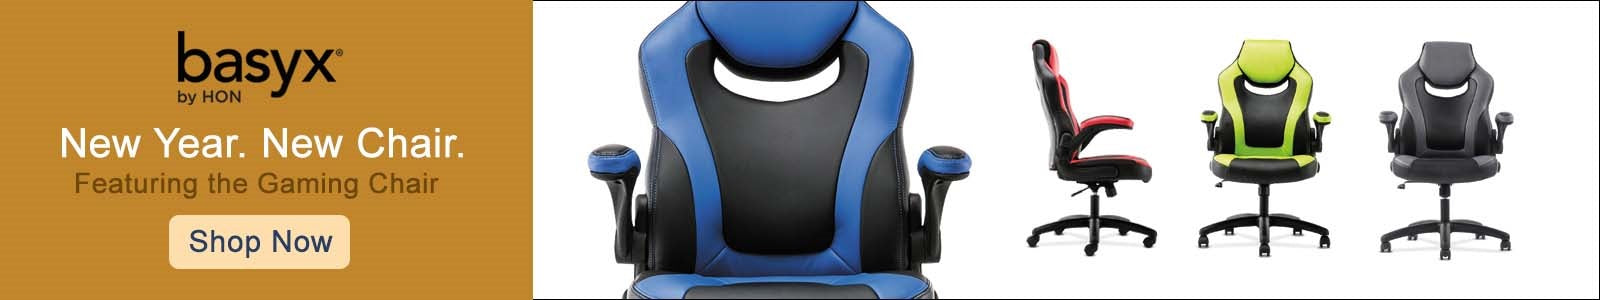 Basyx by HON Gaming Chair Banner